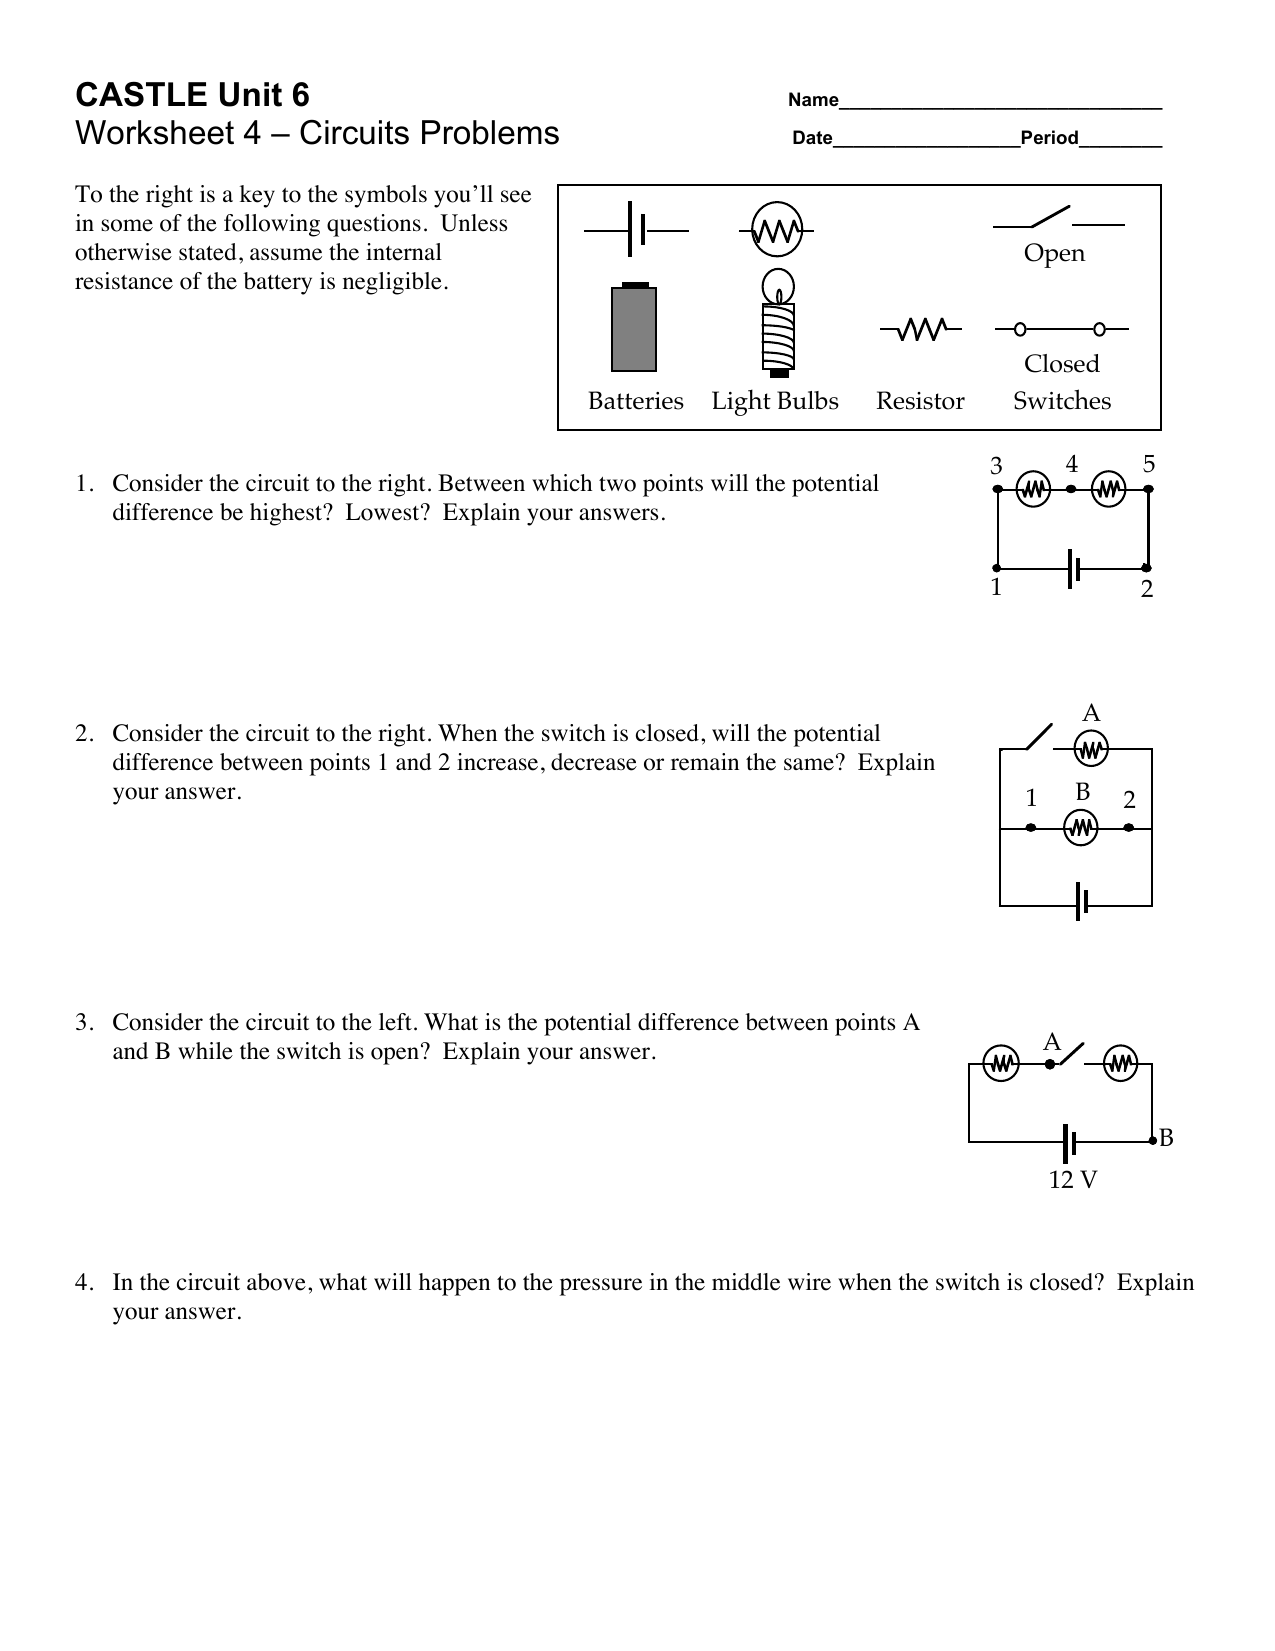 Castle Unit 6 Worksheet 4 Circuits Problems